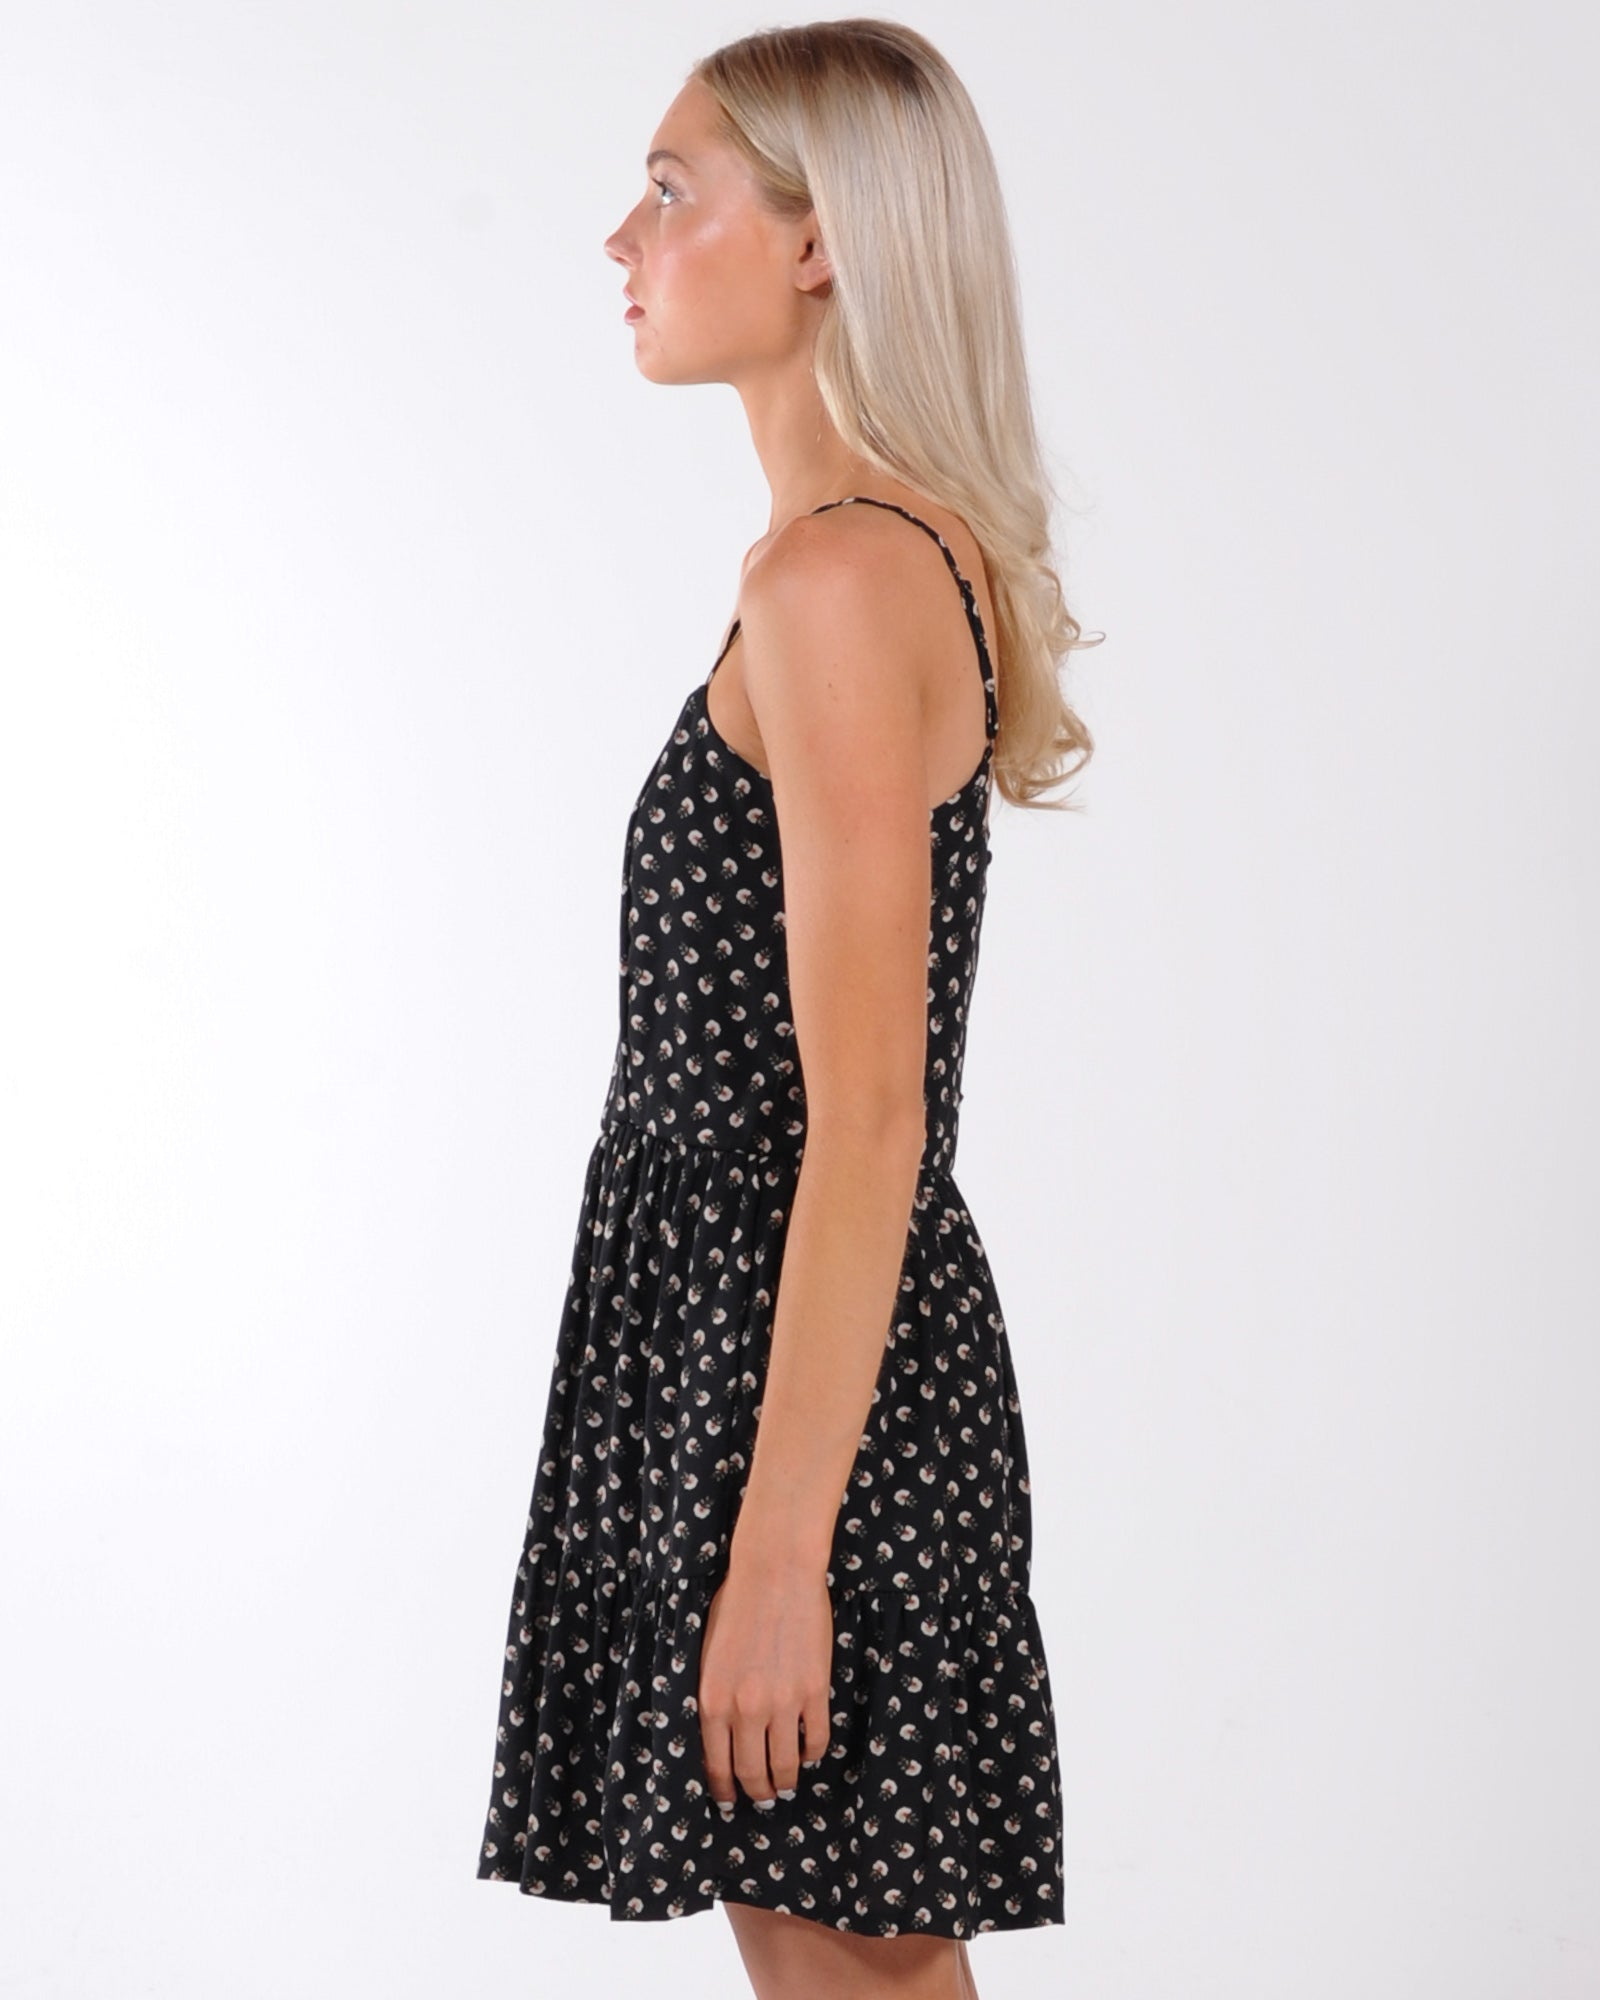 All About Eve Summer Ditsy Dress - Print